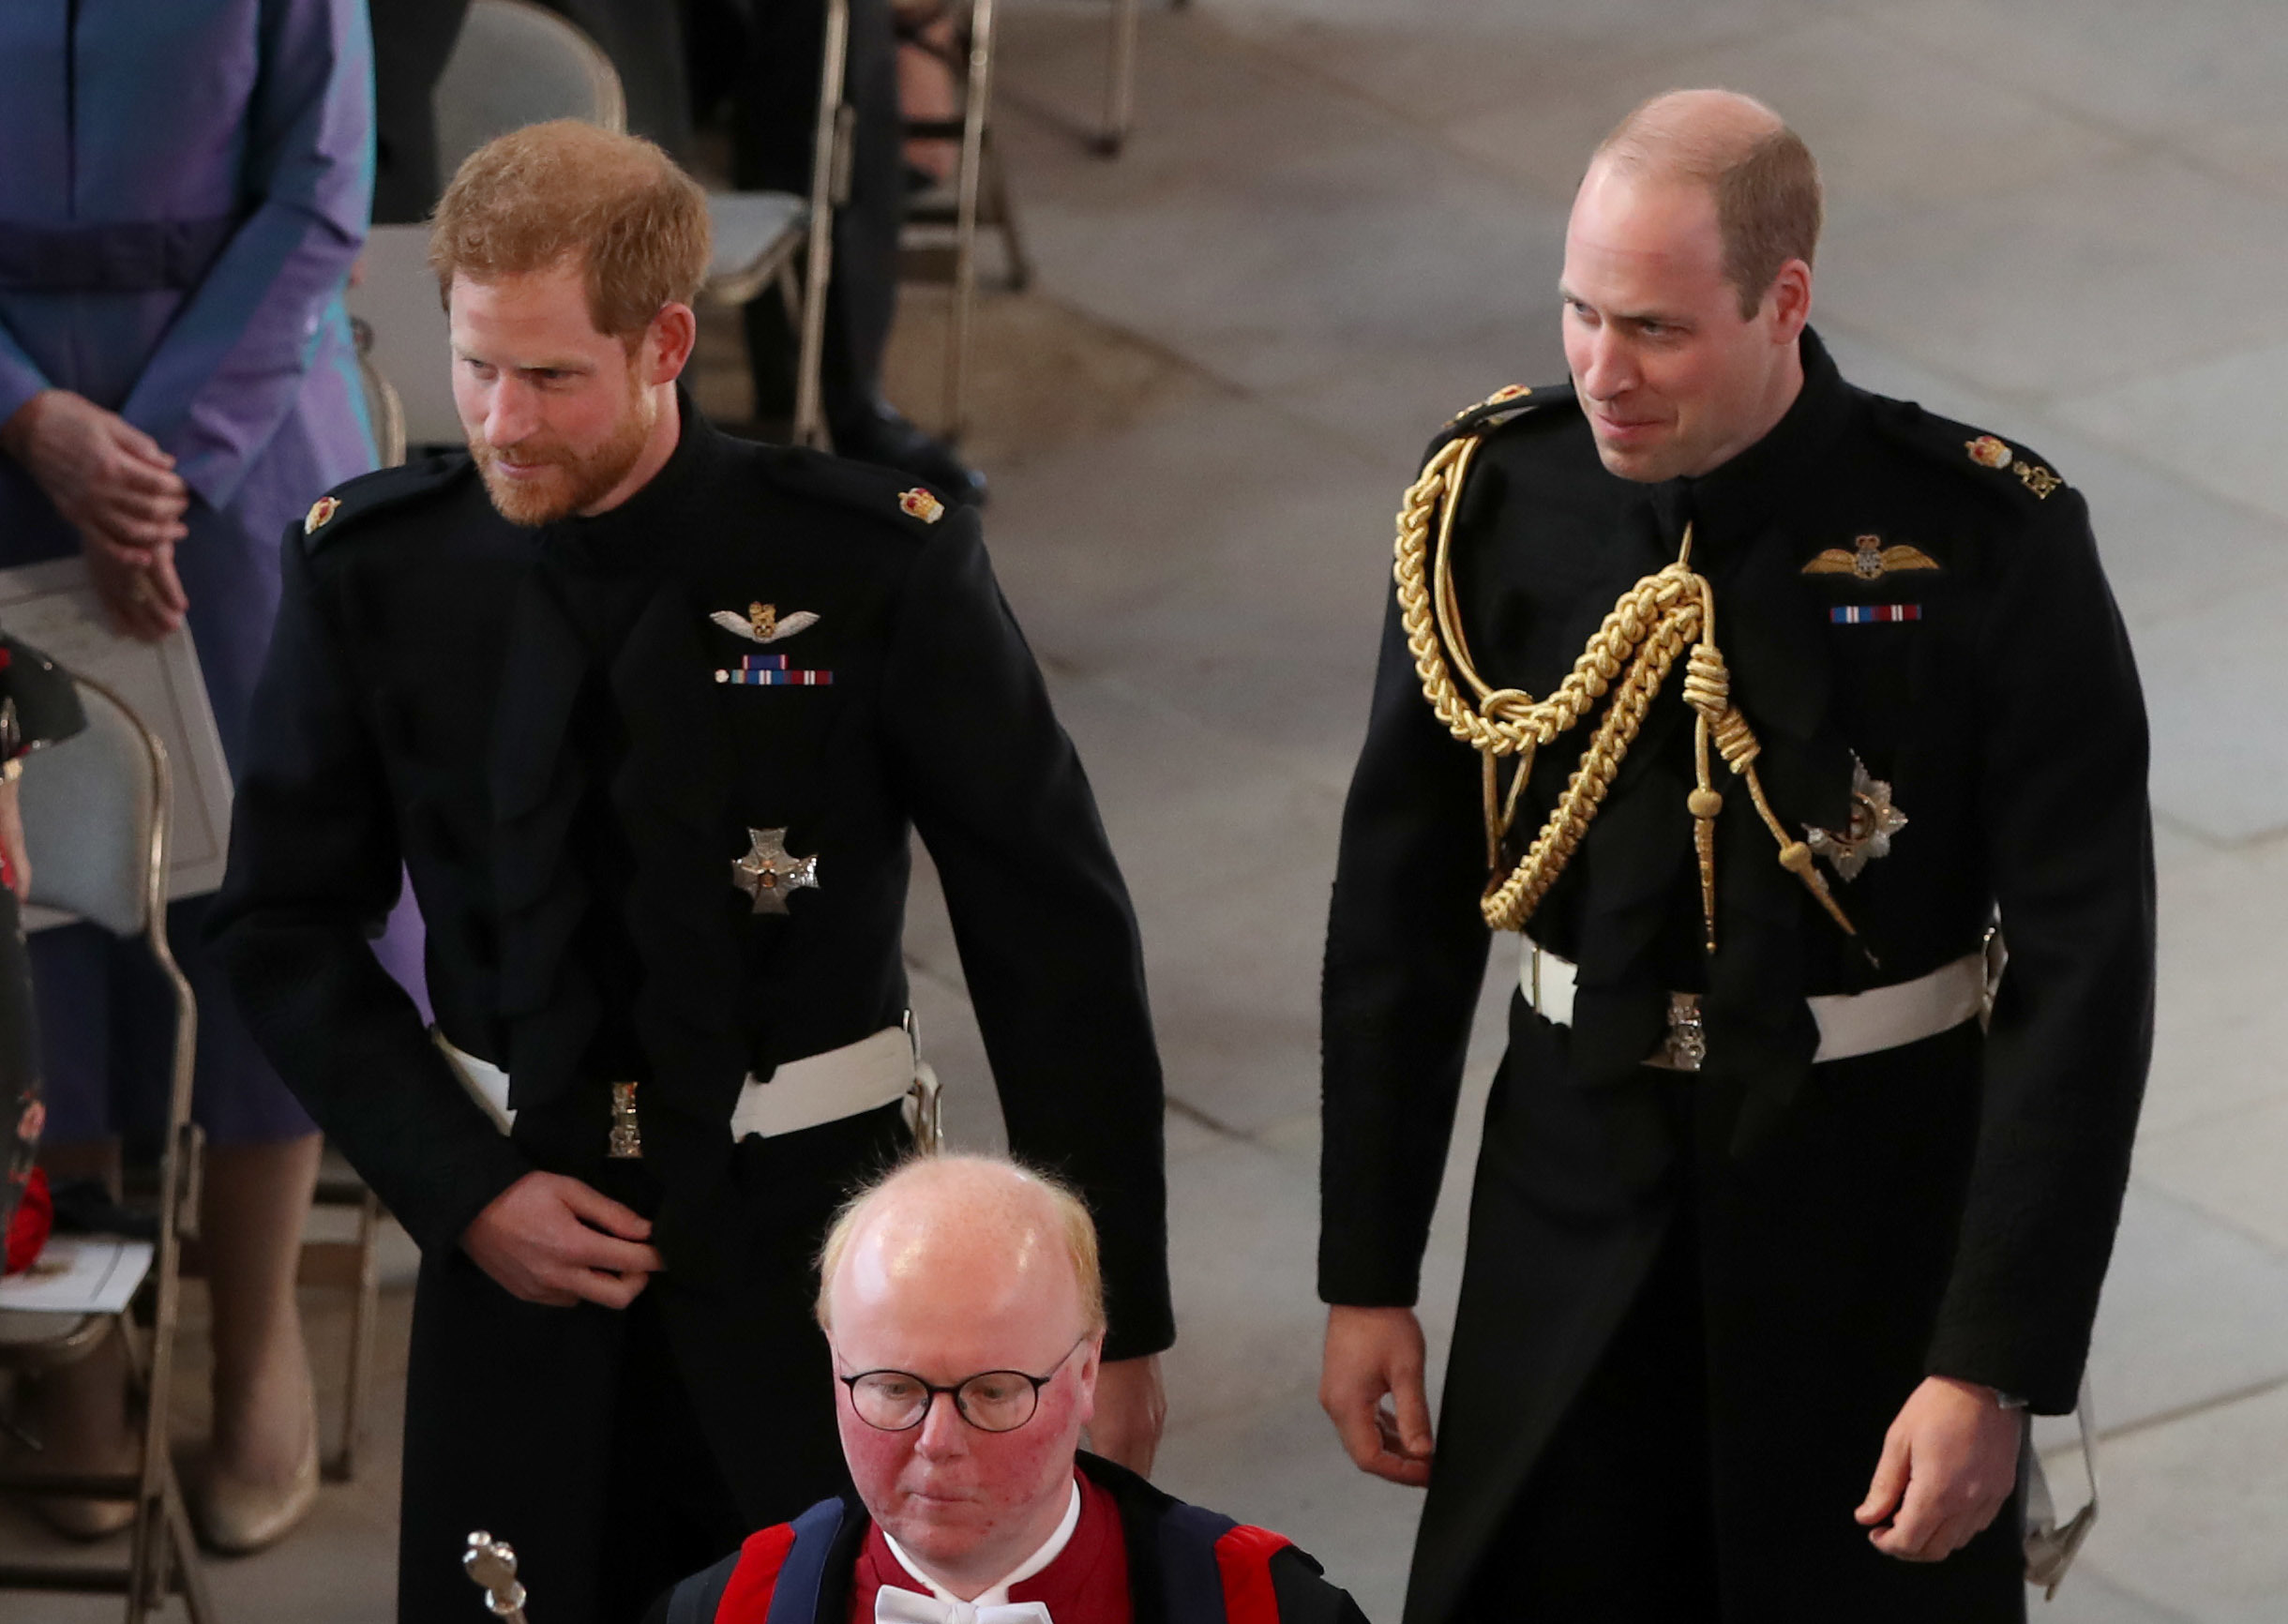 Prince Harry's Reaction To Seeing Meghan Markle Was Perfect